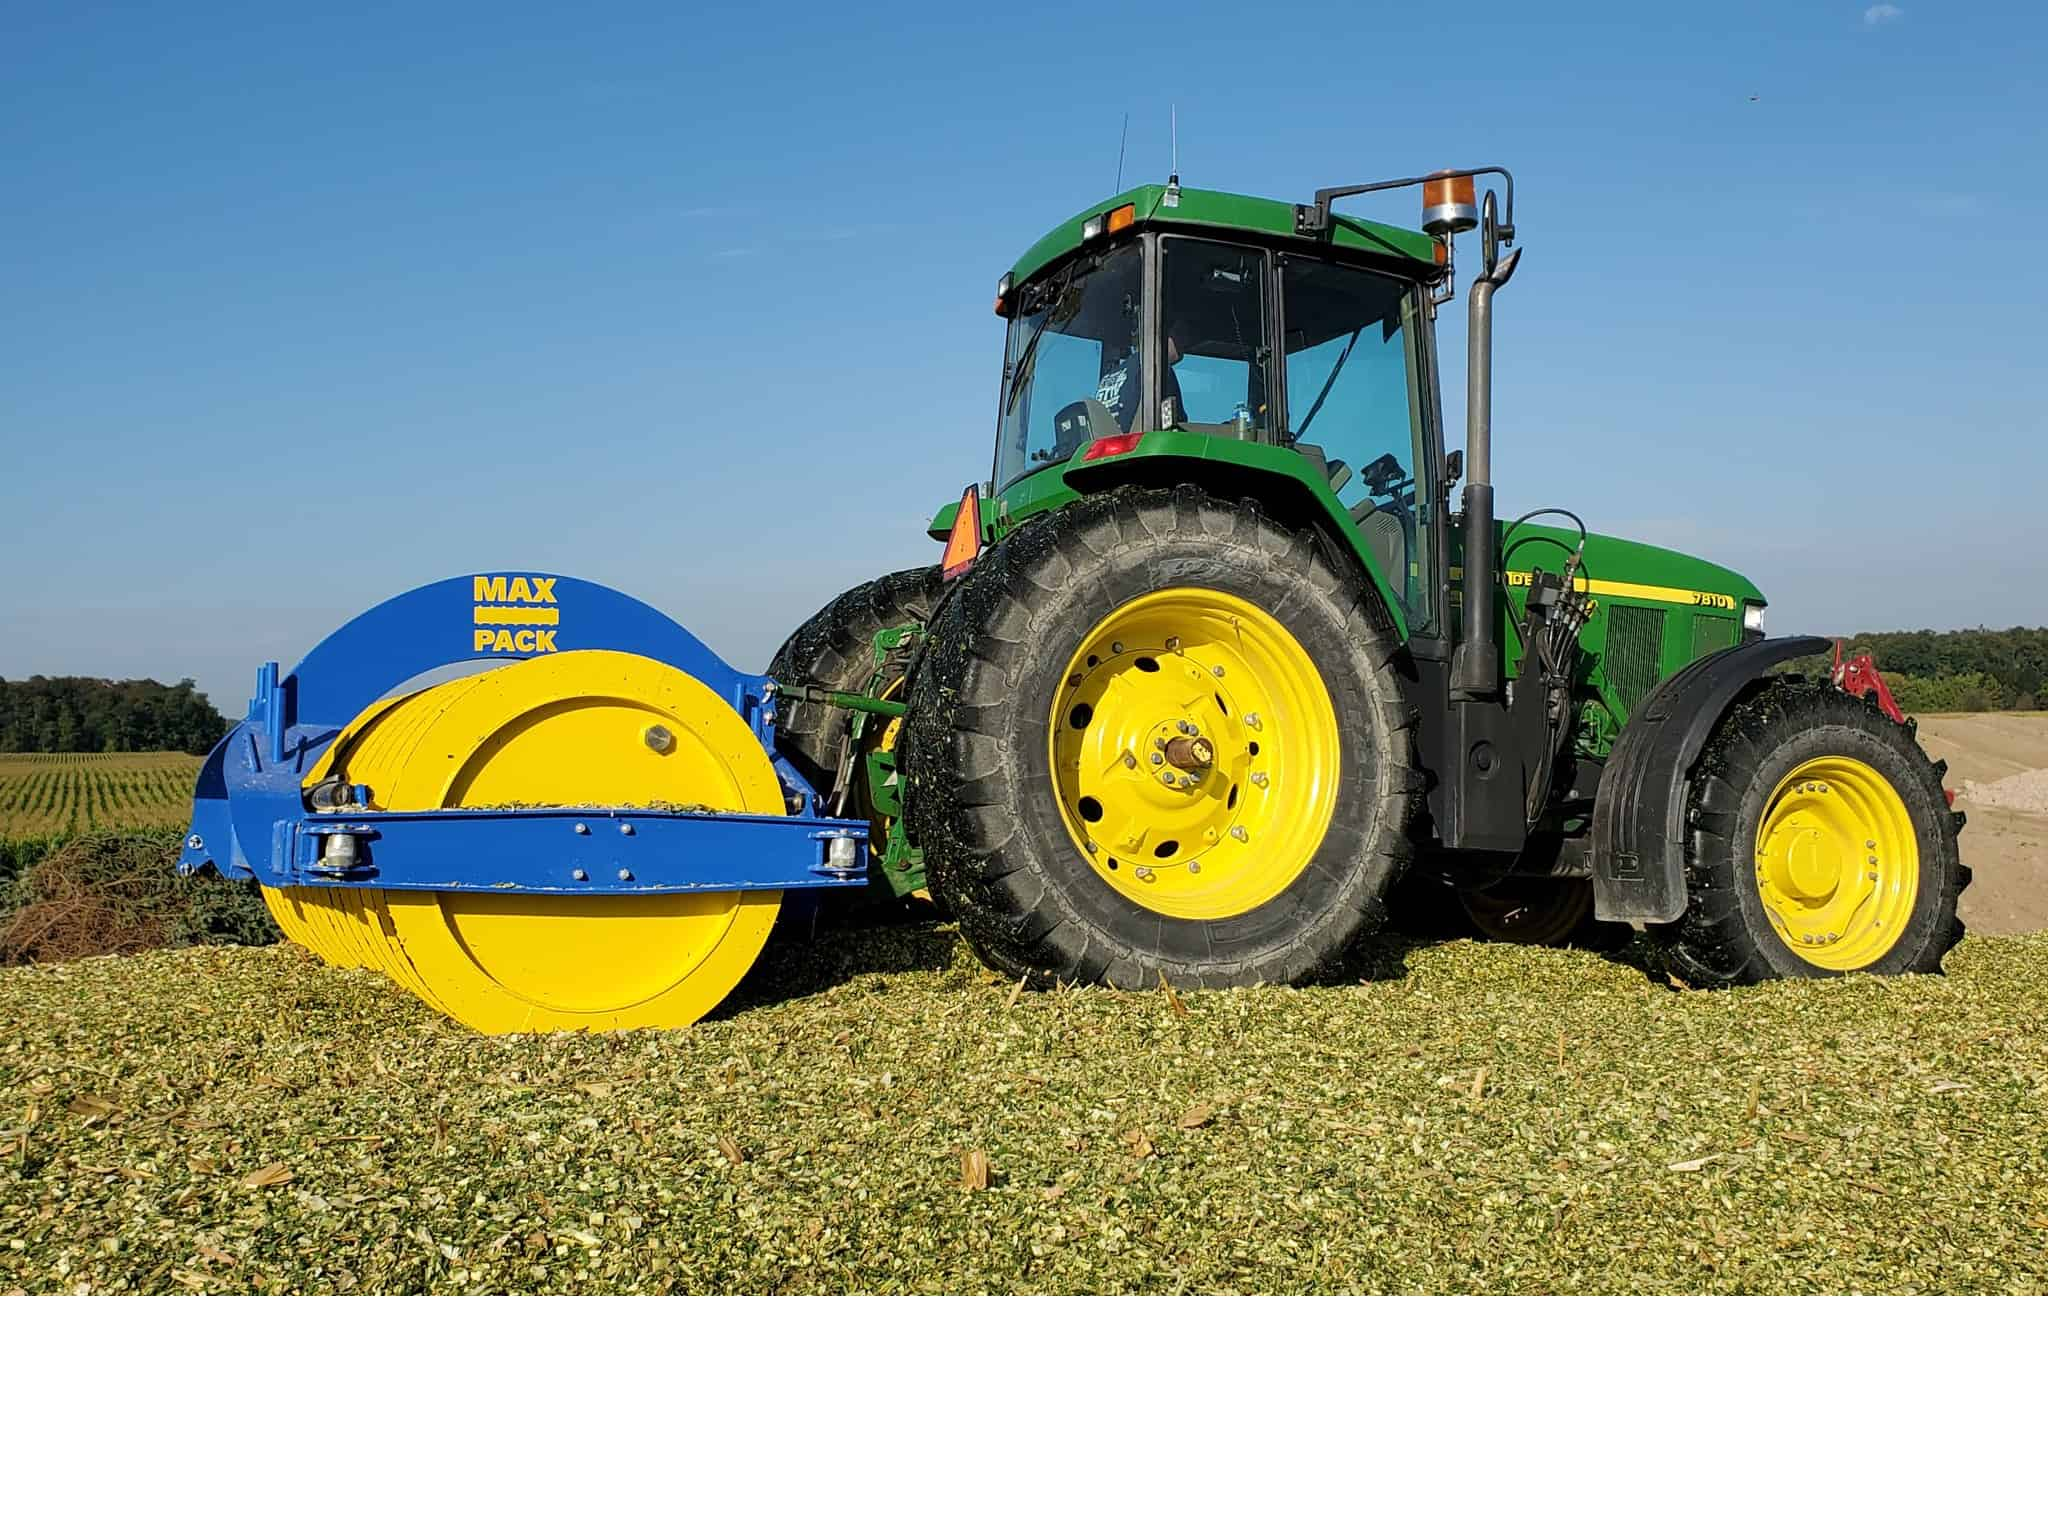 Max Pack Silage Compaction Roller for packing down bunk silo silage. Sold in Canada by Zuidervaart Agri-Import Ltd.